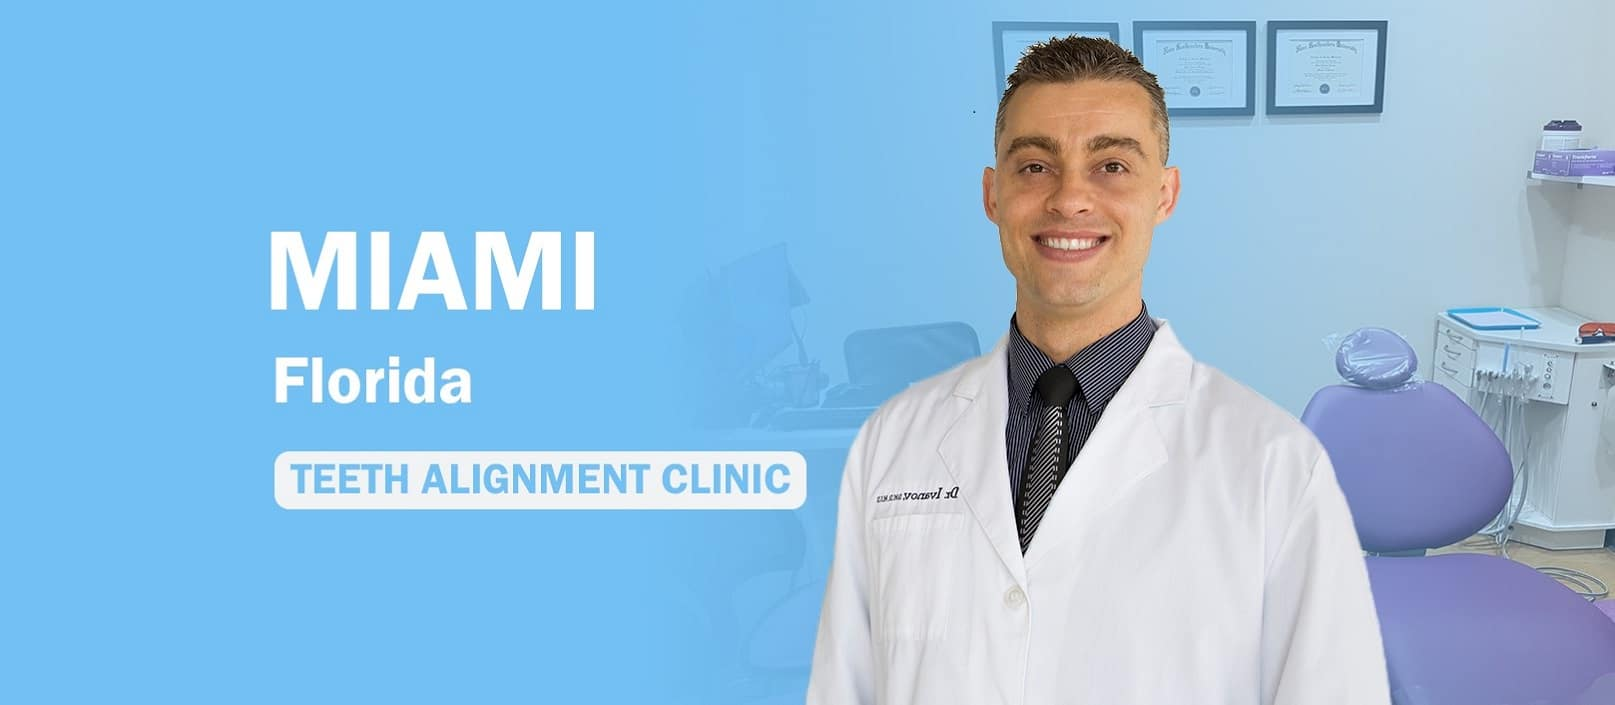 ivanov-orthodontic-experts-orthodontist-near-me-for-dental-braces-and-invisalign-in-aventura-north-miami-beach-north-miami-hay-harbor-islands-miami-shores